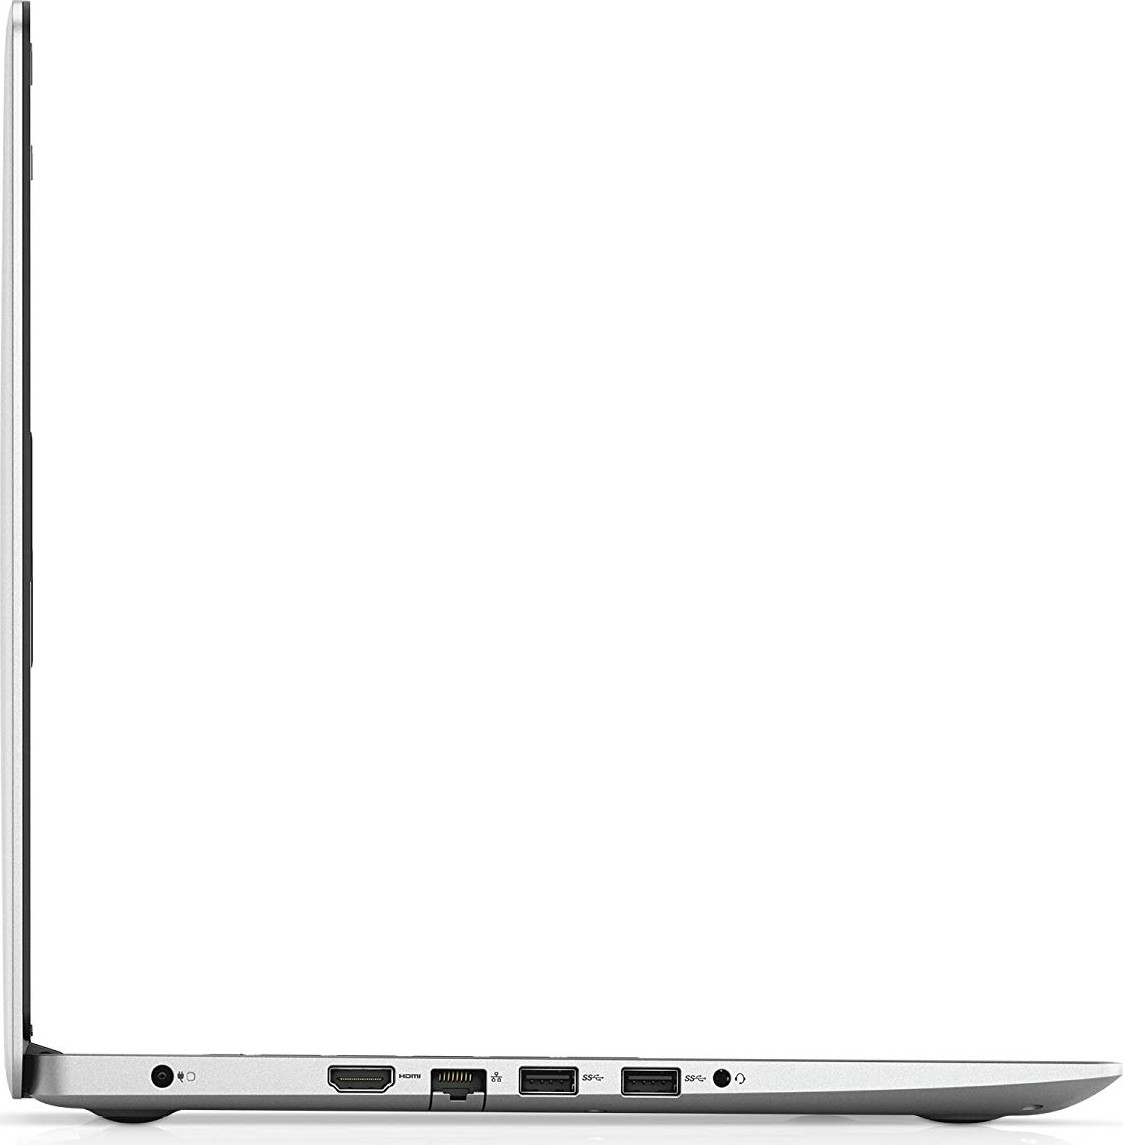 "Dell i5575-A217SLV-PUS Inspiron 15 5575 - LED-Backlit Display - AMD Ryzen 5 - Radeon Vega8 Graphics - 8GB Memory - 1TB Hard Drive, 15.6"", Platinum Silver"